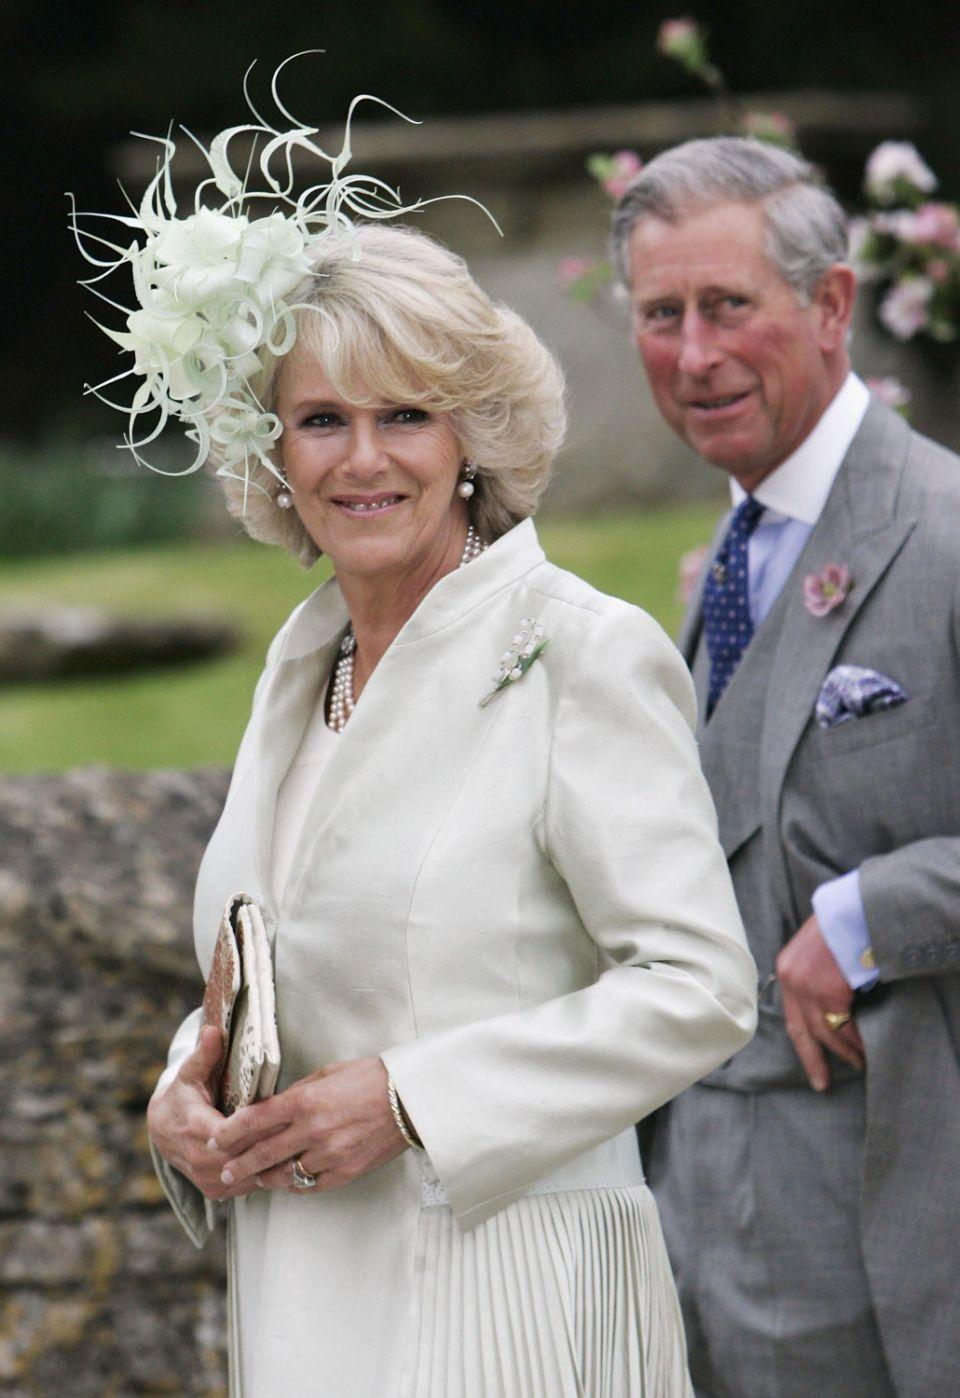 It's thought the Queen will abdicate and hand over the crown to Prince Charles. Photo: Getty Images